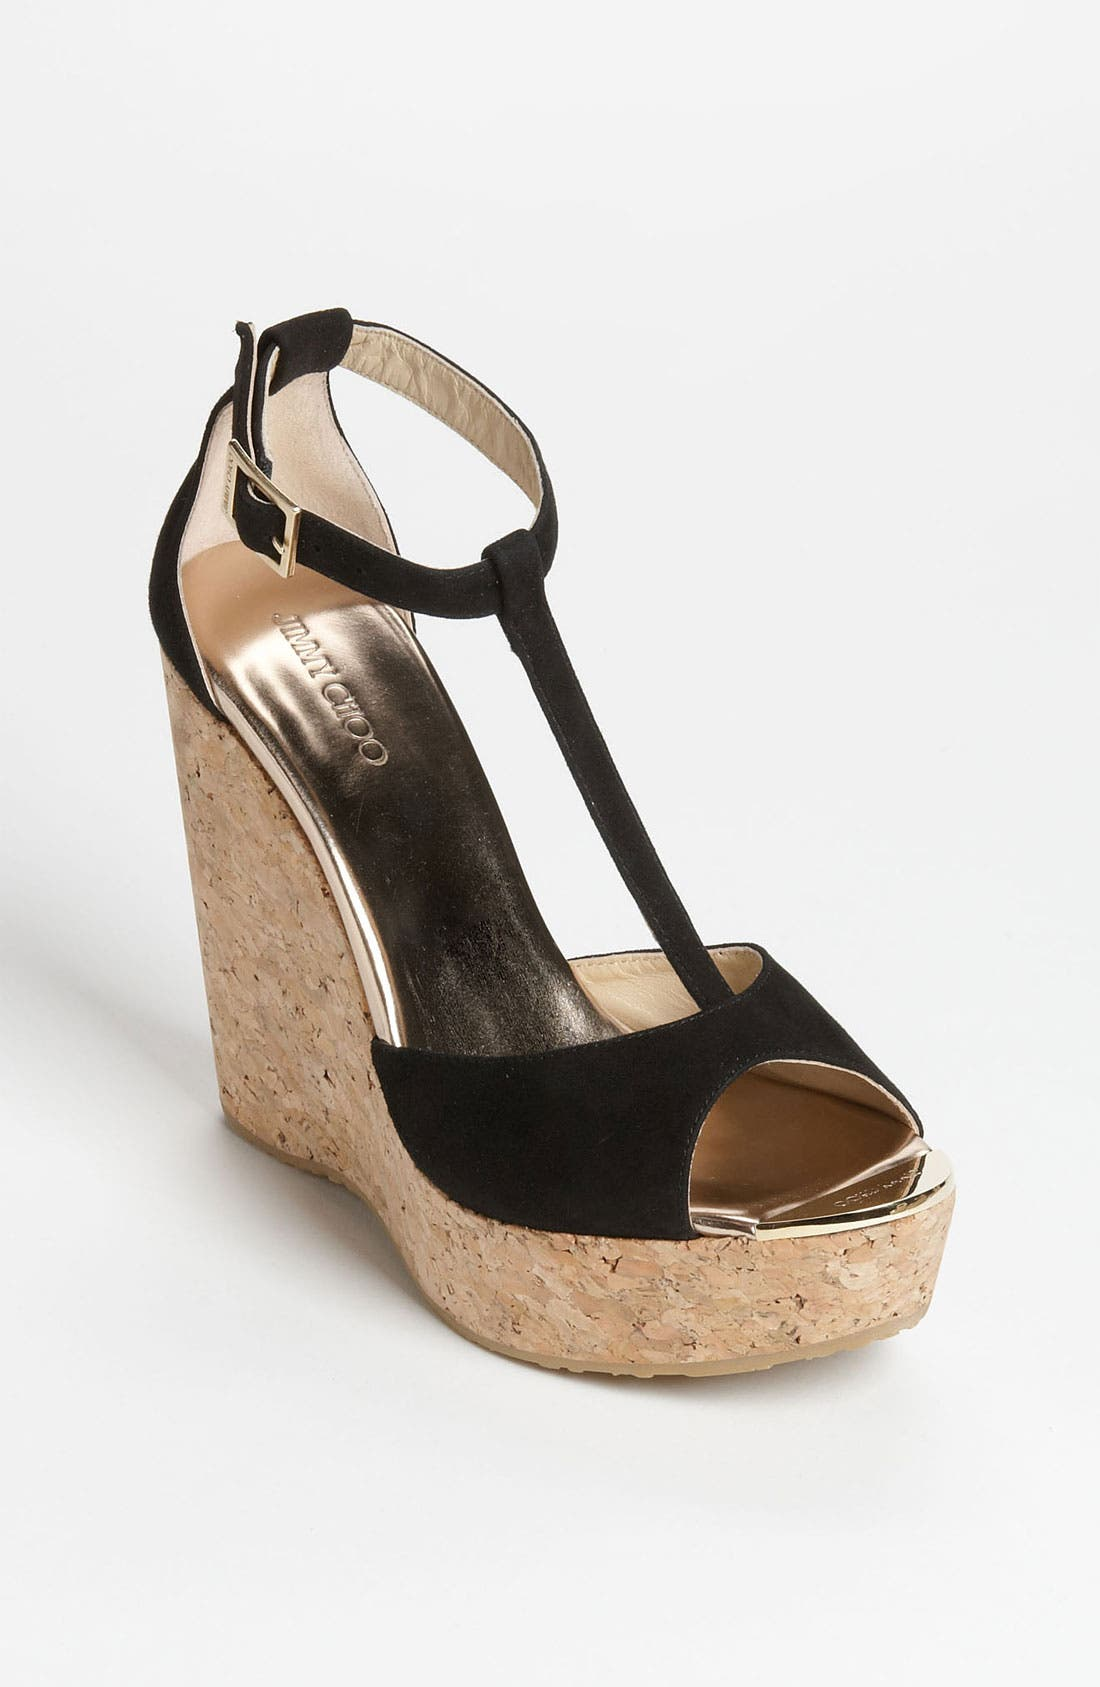 Alternate Image 1 Selected - Jimmy Choo 'Pela' Cork Sandal